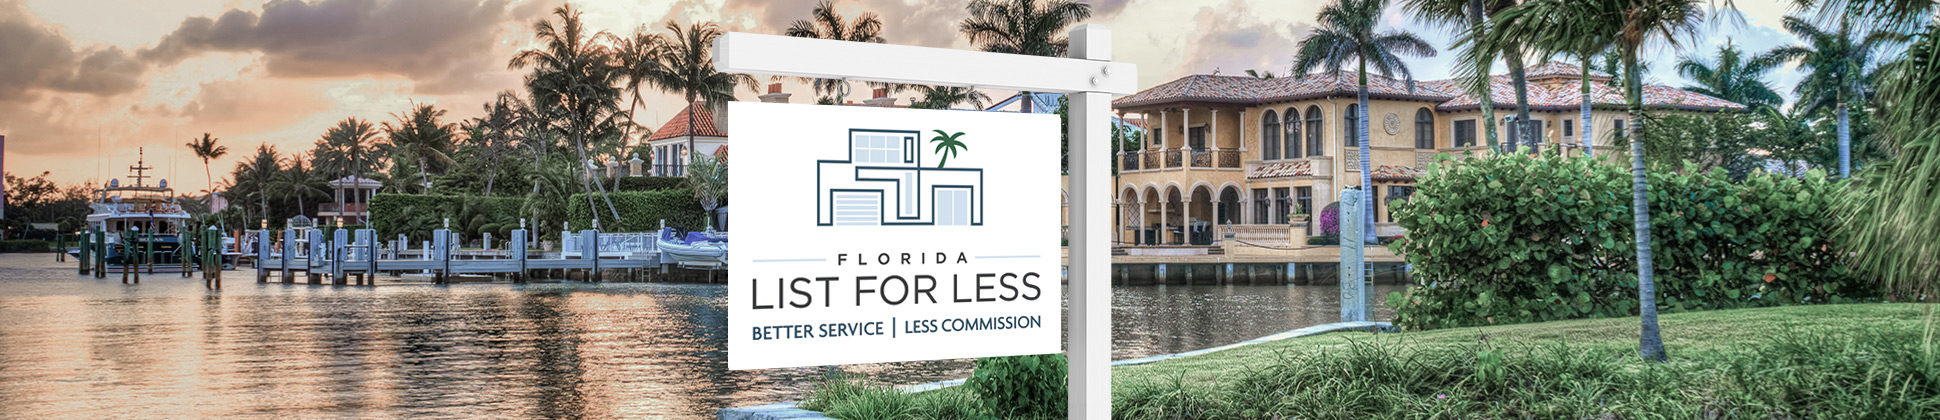 Sarasota For Sale By Owners |  Discount Fl. Realtors | Florida List For Less